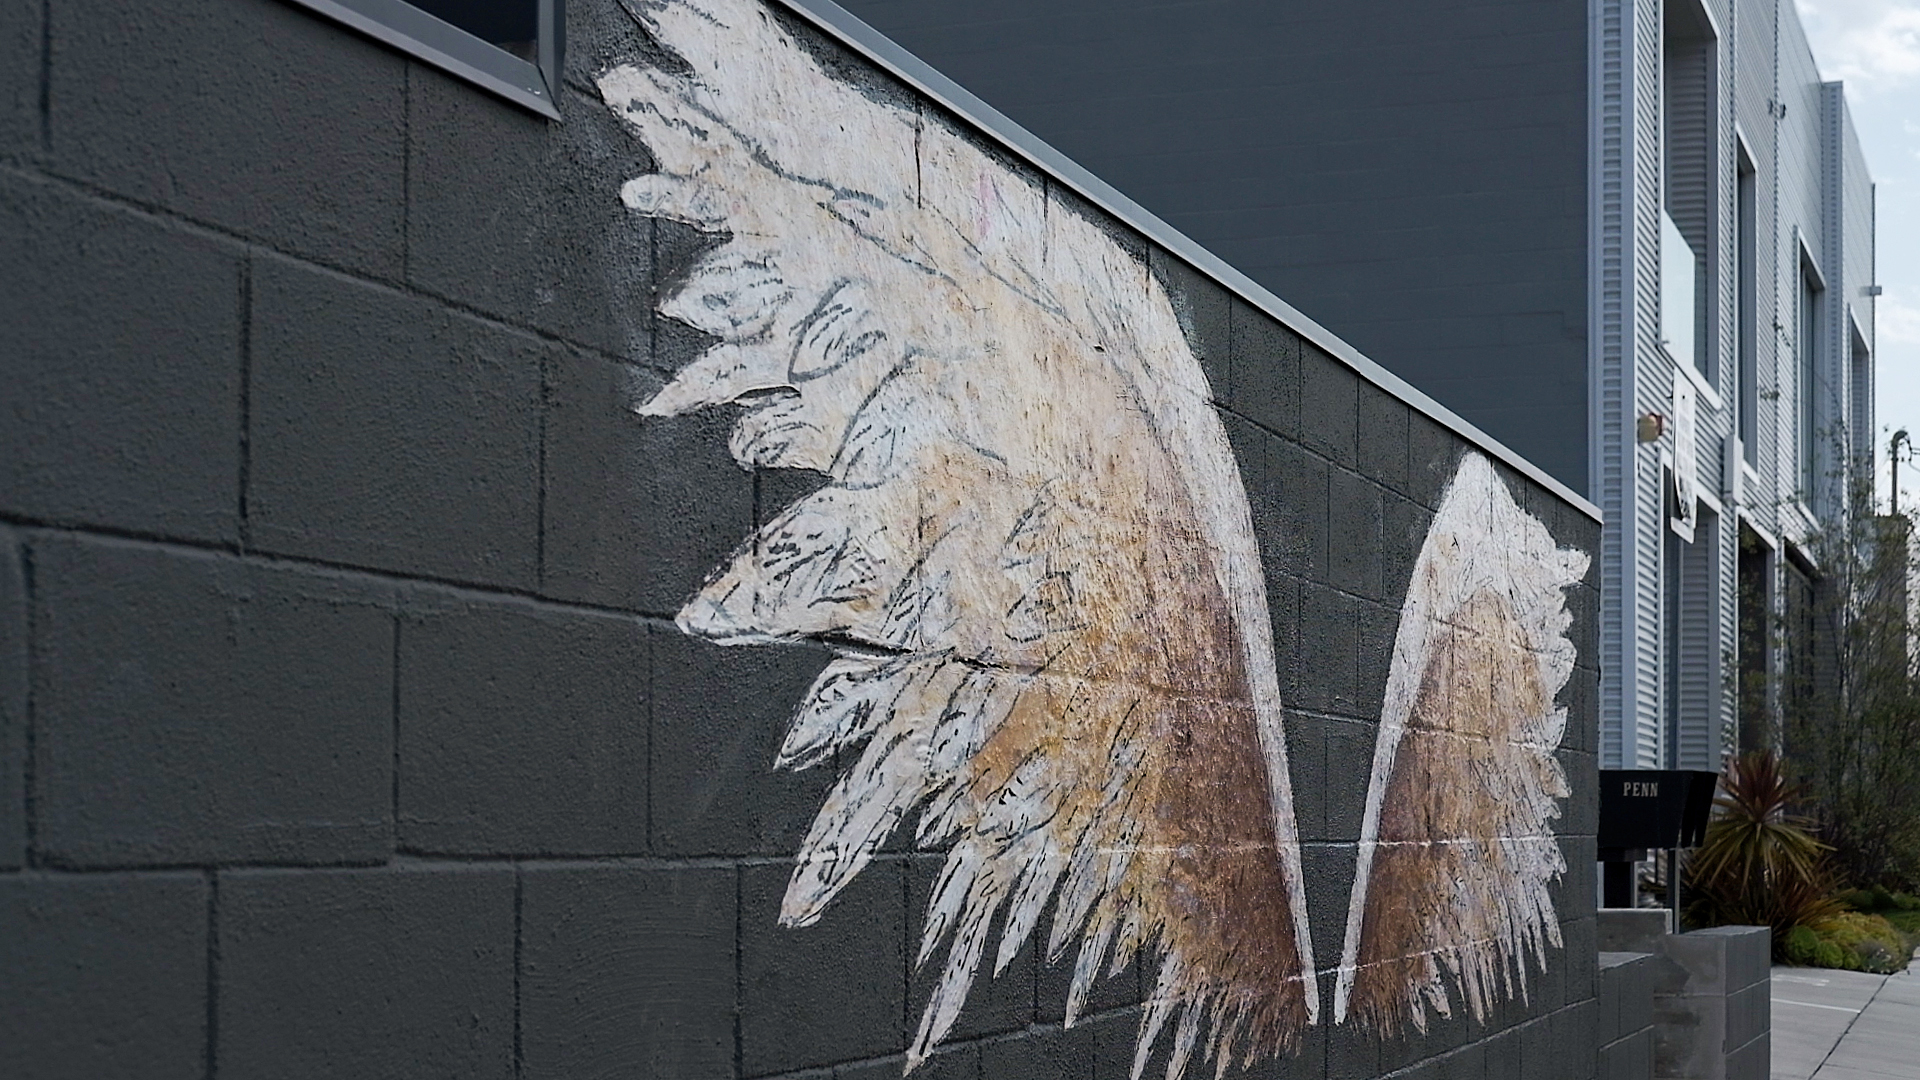 Painted angel wings on gray wall